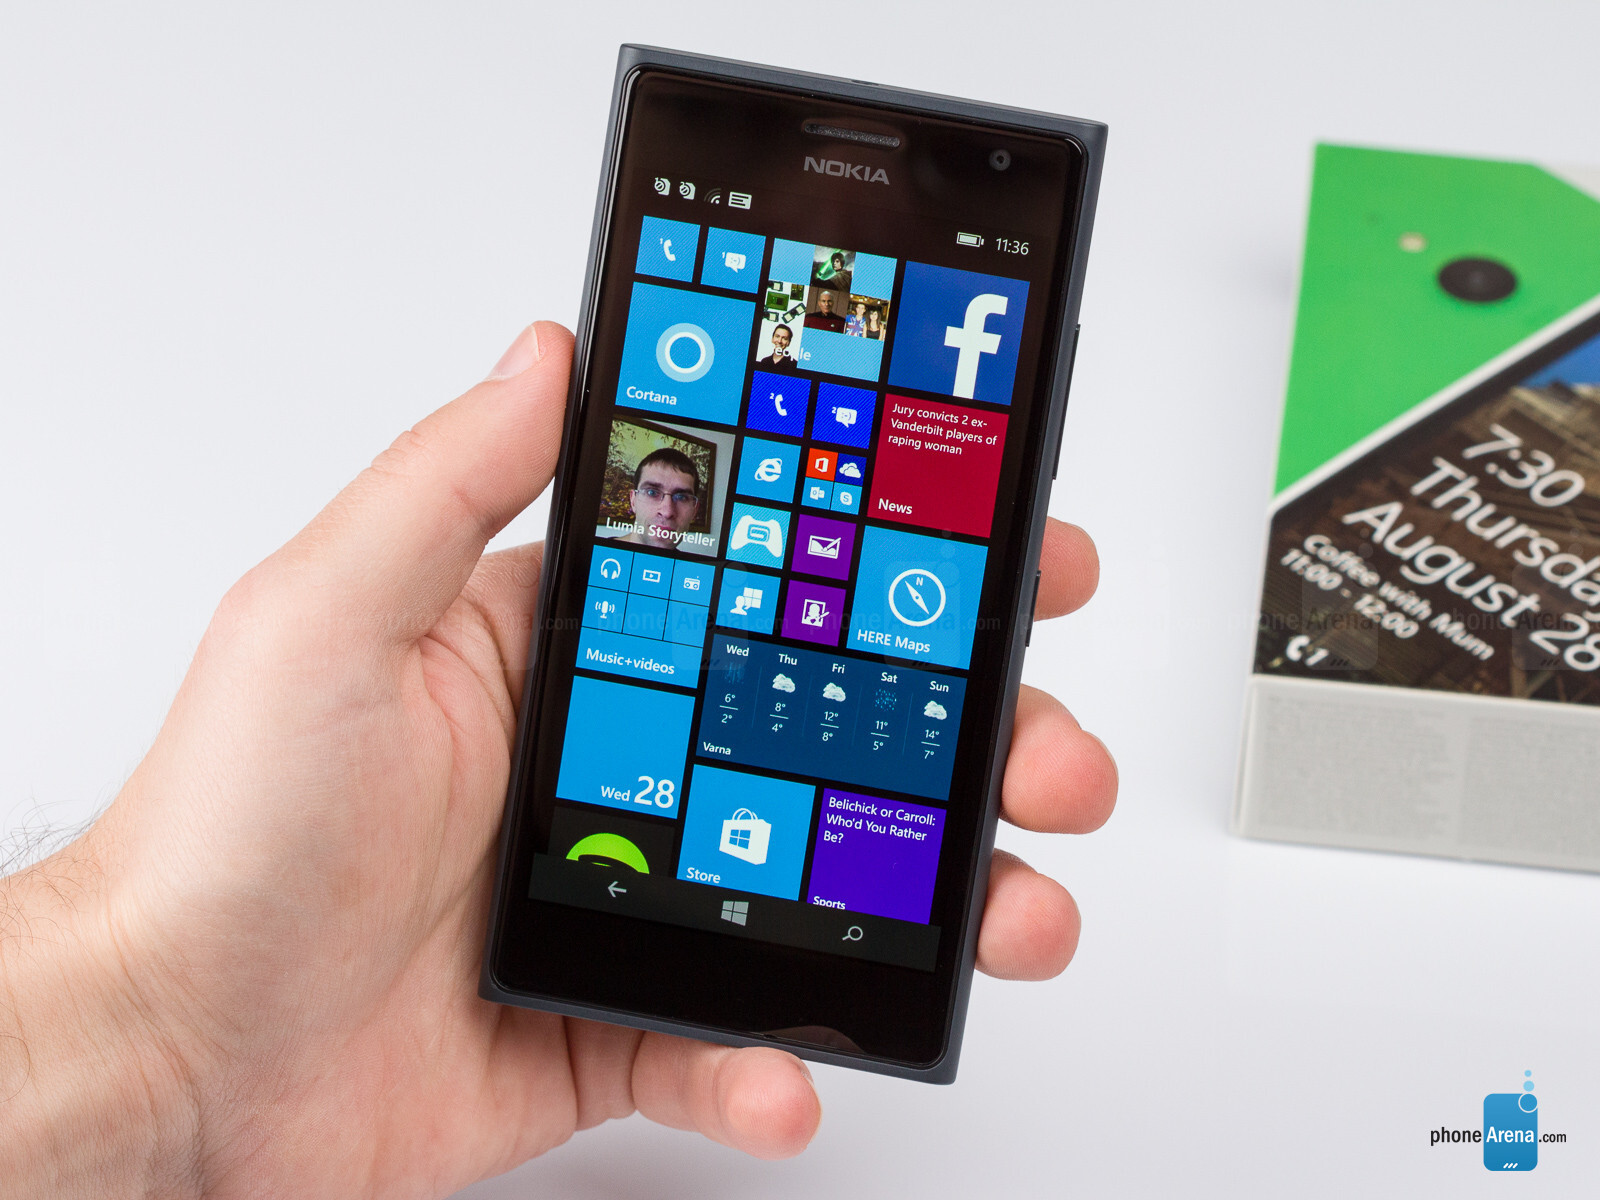 Smartphone Nokia Lumia 720: characteristics, instructions, settings, reviews 83